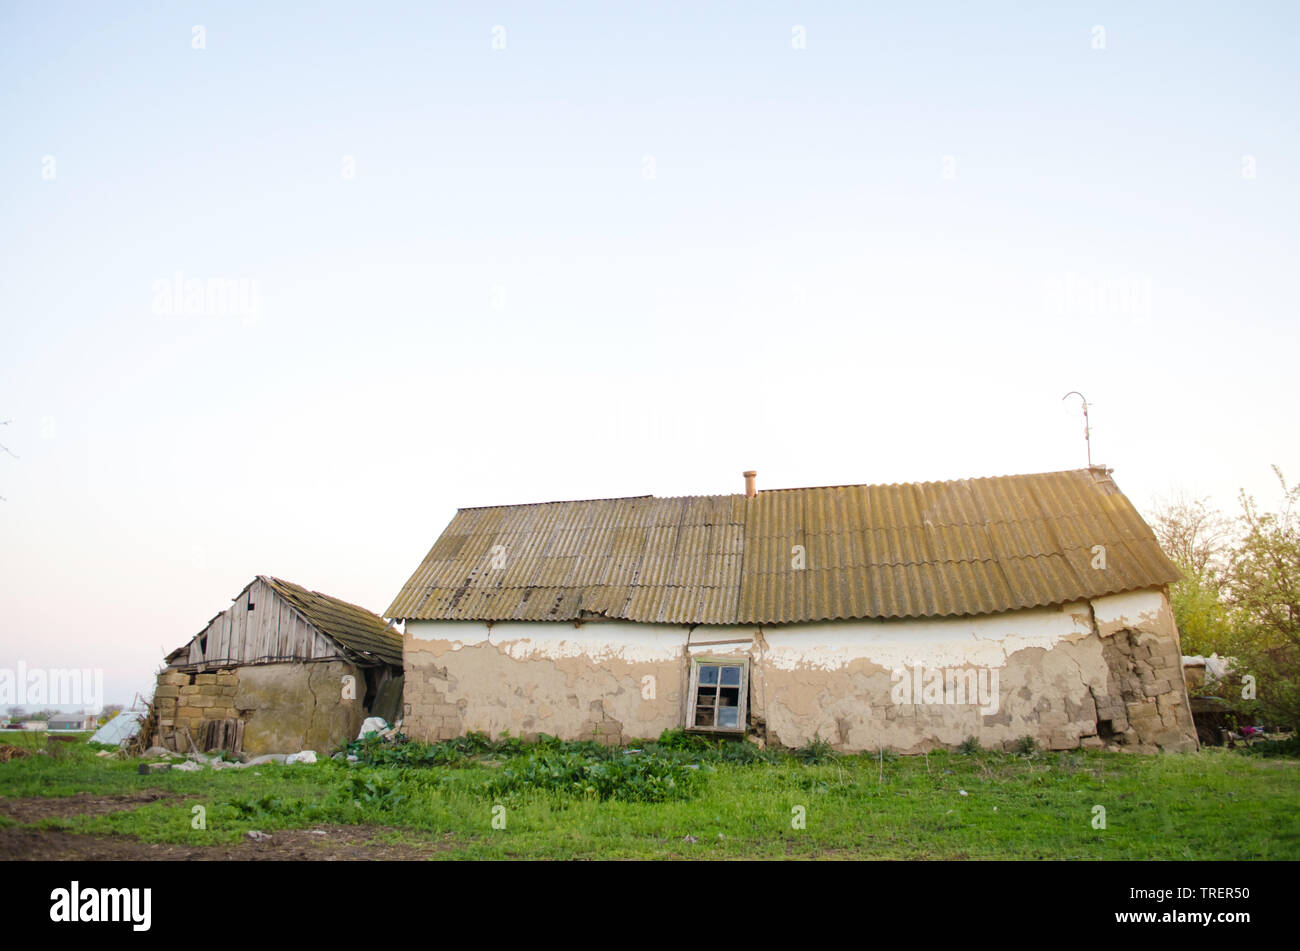 Old ruined house in the countryside. Emergency housing. Disaster. Storm hurricane flood earthquake. Demolition of old buildings. Dangerous home - Stock Image